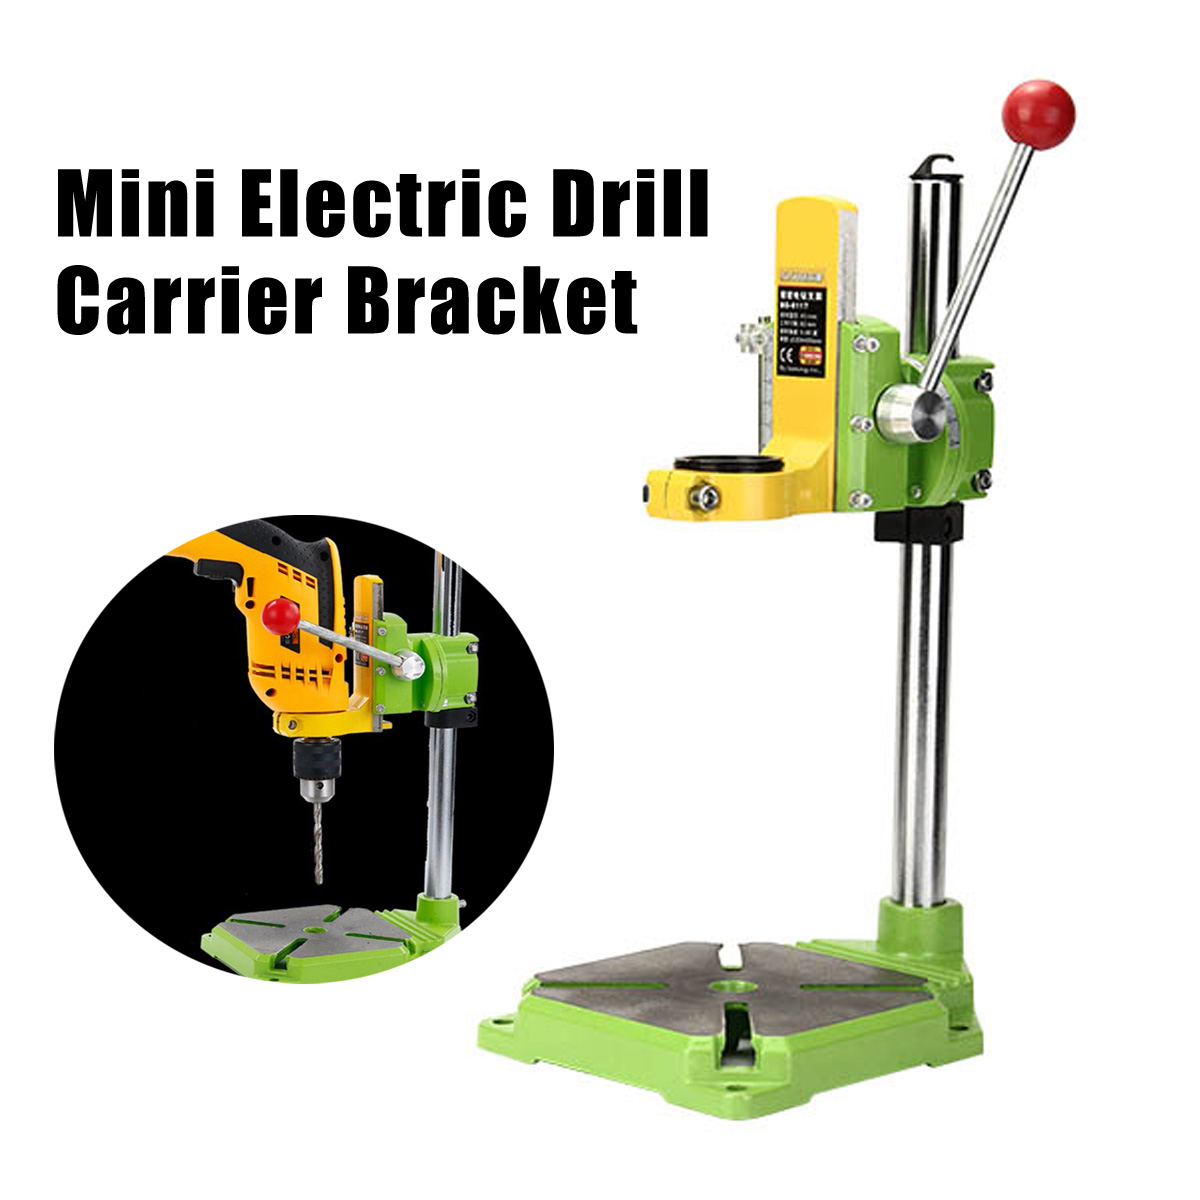 Mini Electric Drill Carrier Bracket 90 Degree Mini Electric Rotating Fixed Frame Bench Drill Stand Press Power Tool Accessories